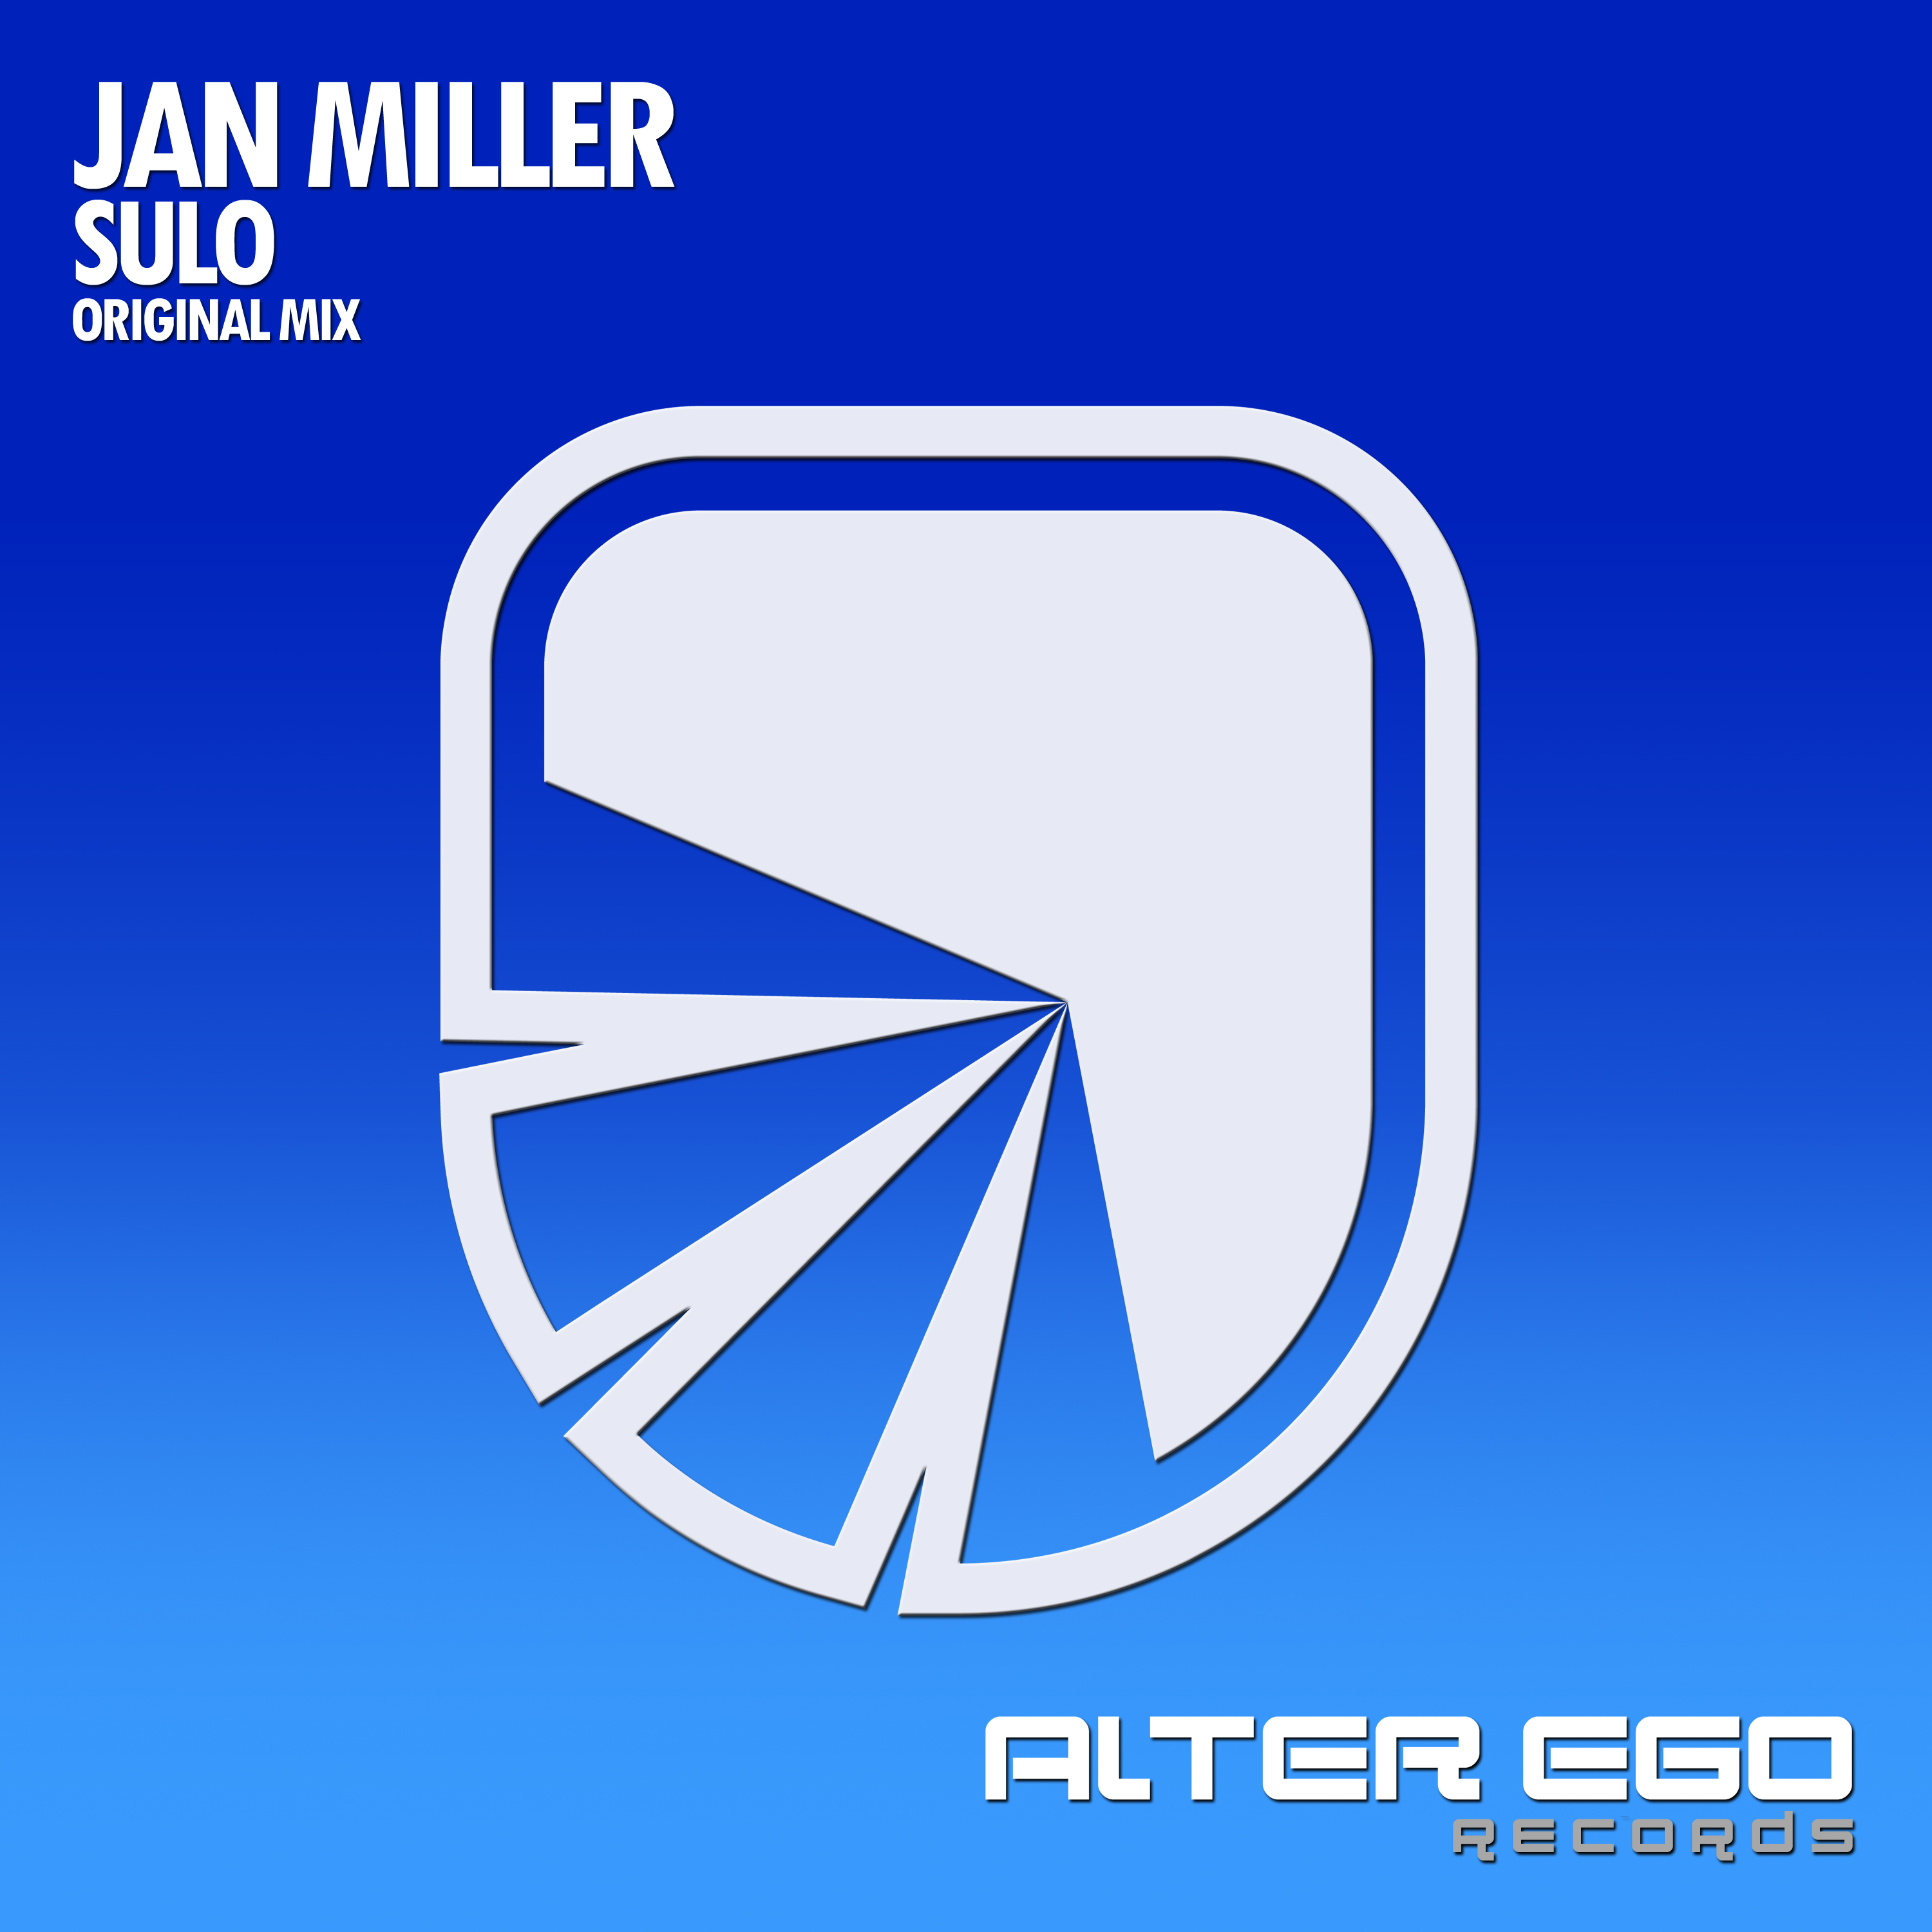 Jan Miller - Sulo OUT NOW!